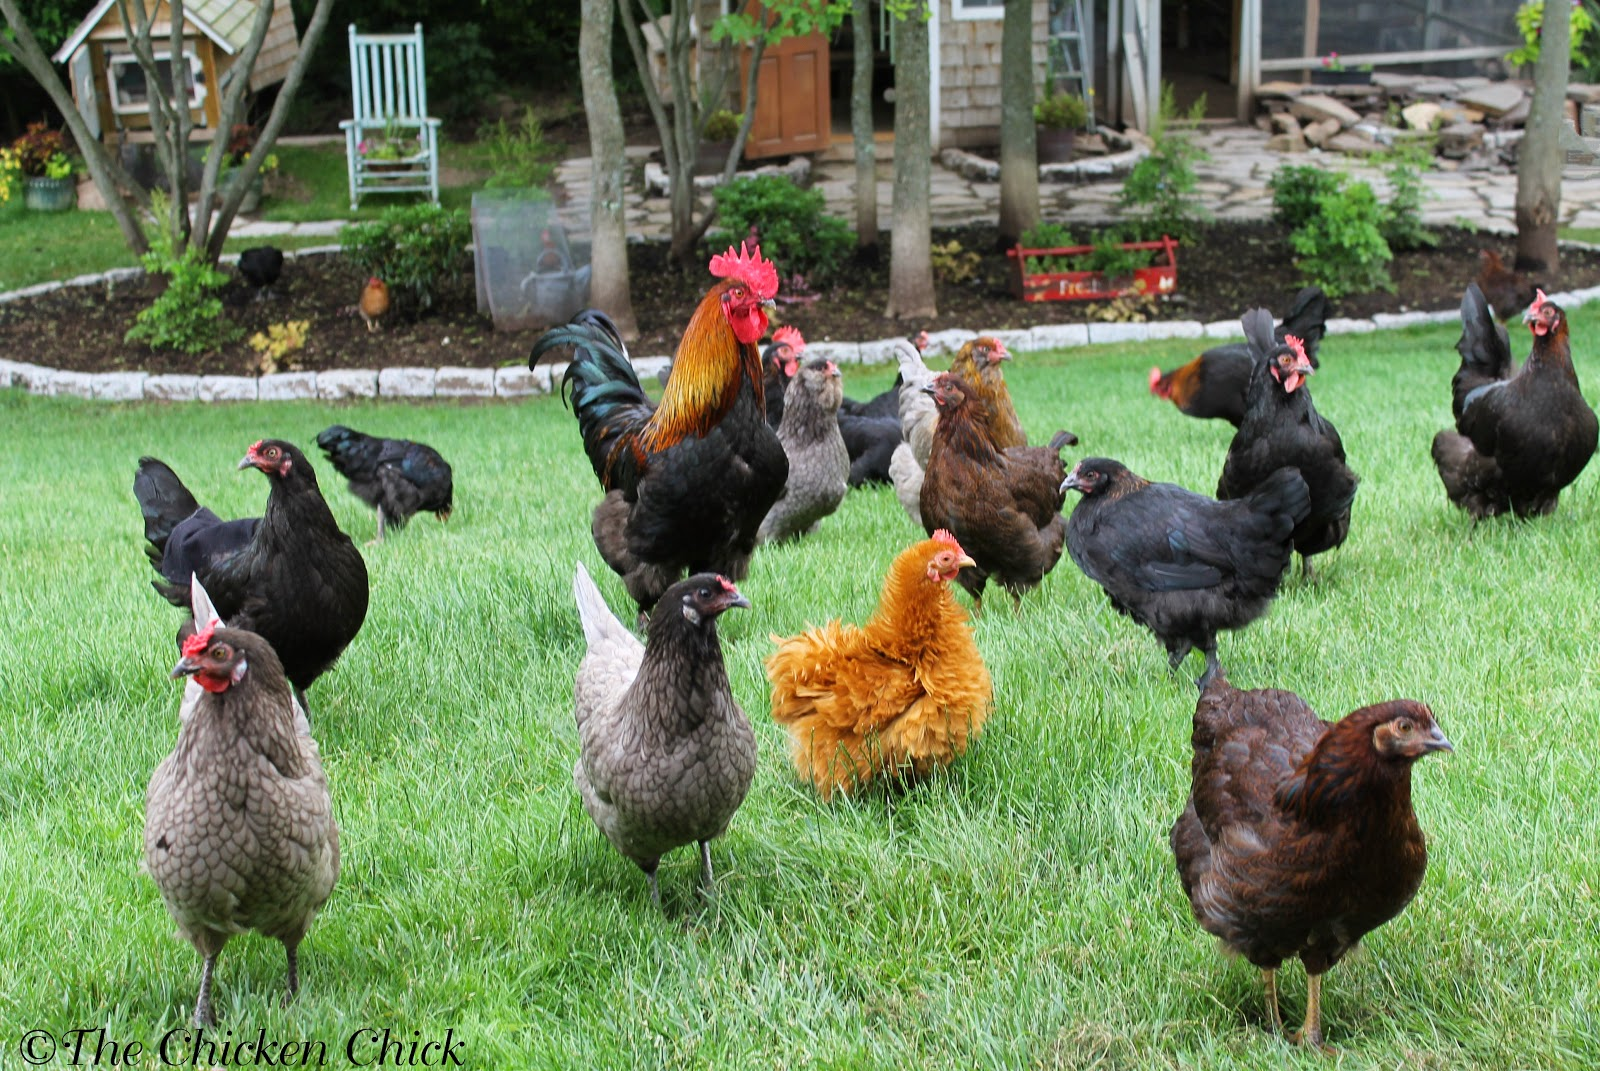 Depopulate: That's the sanitized term for euthanizing the entire flock, cleaning the area and starting clean with a new flock. It's not realistic for most backyard flocks kept as pets.